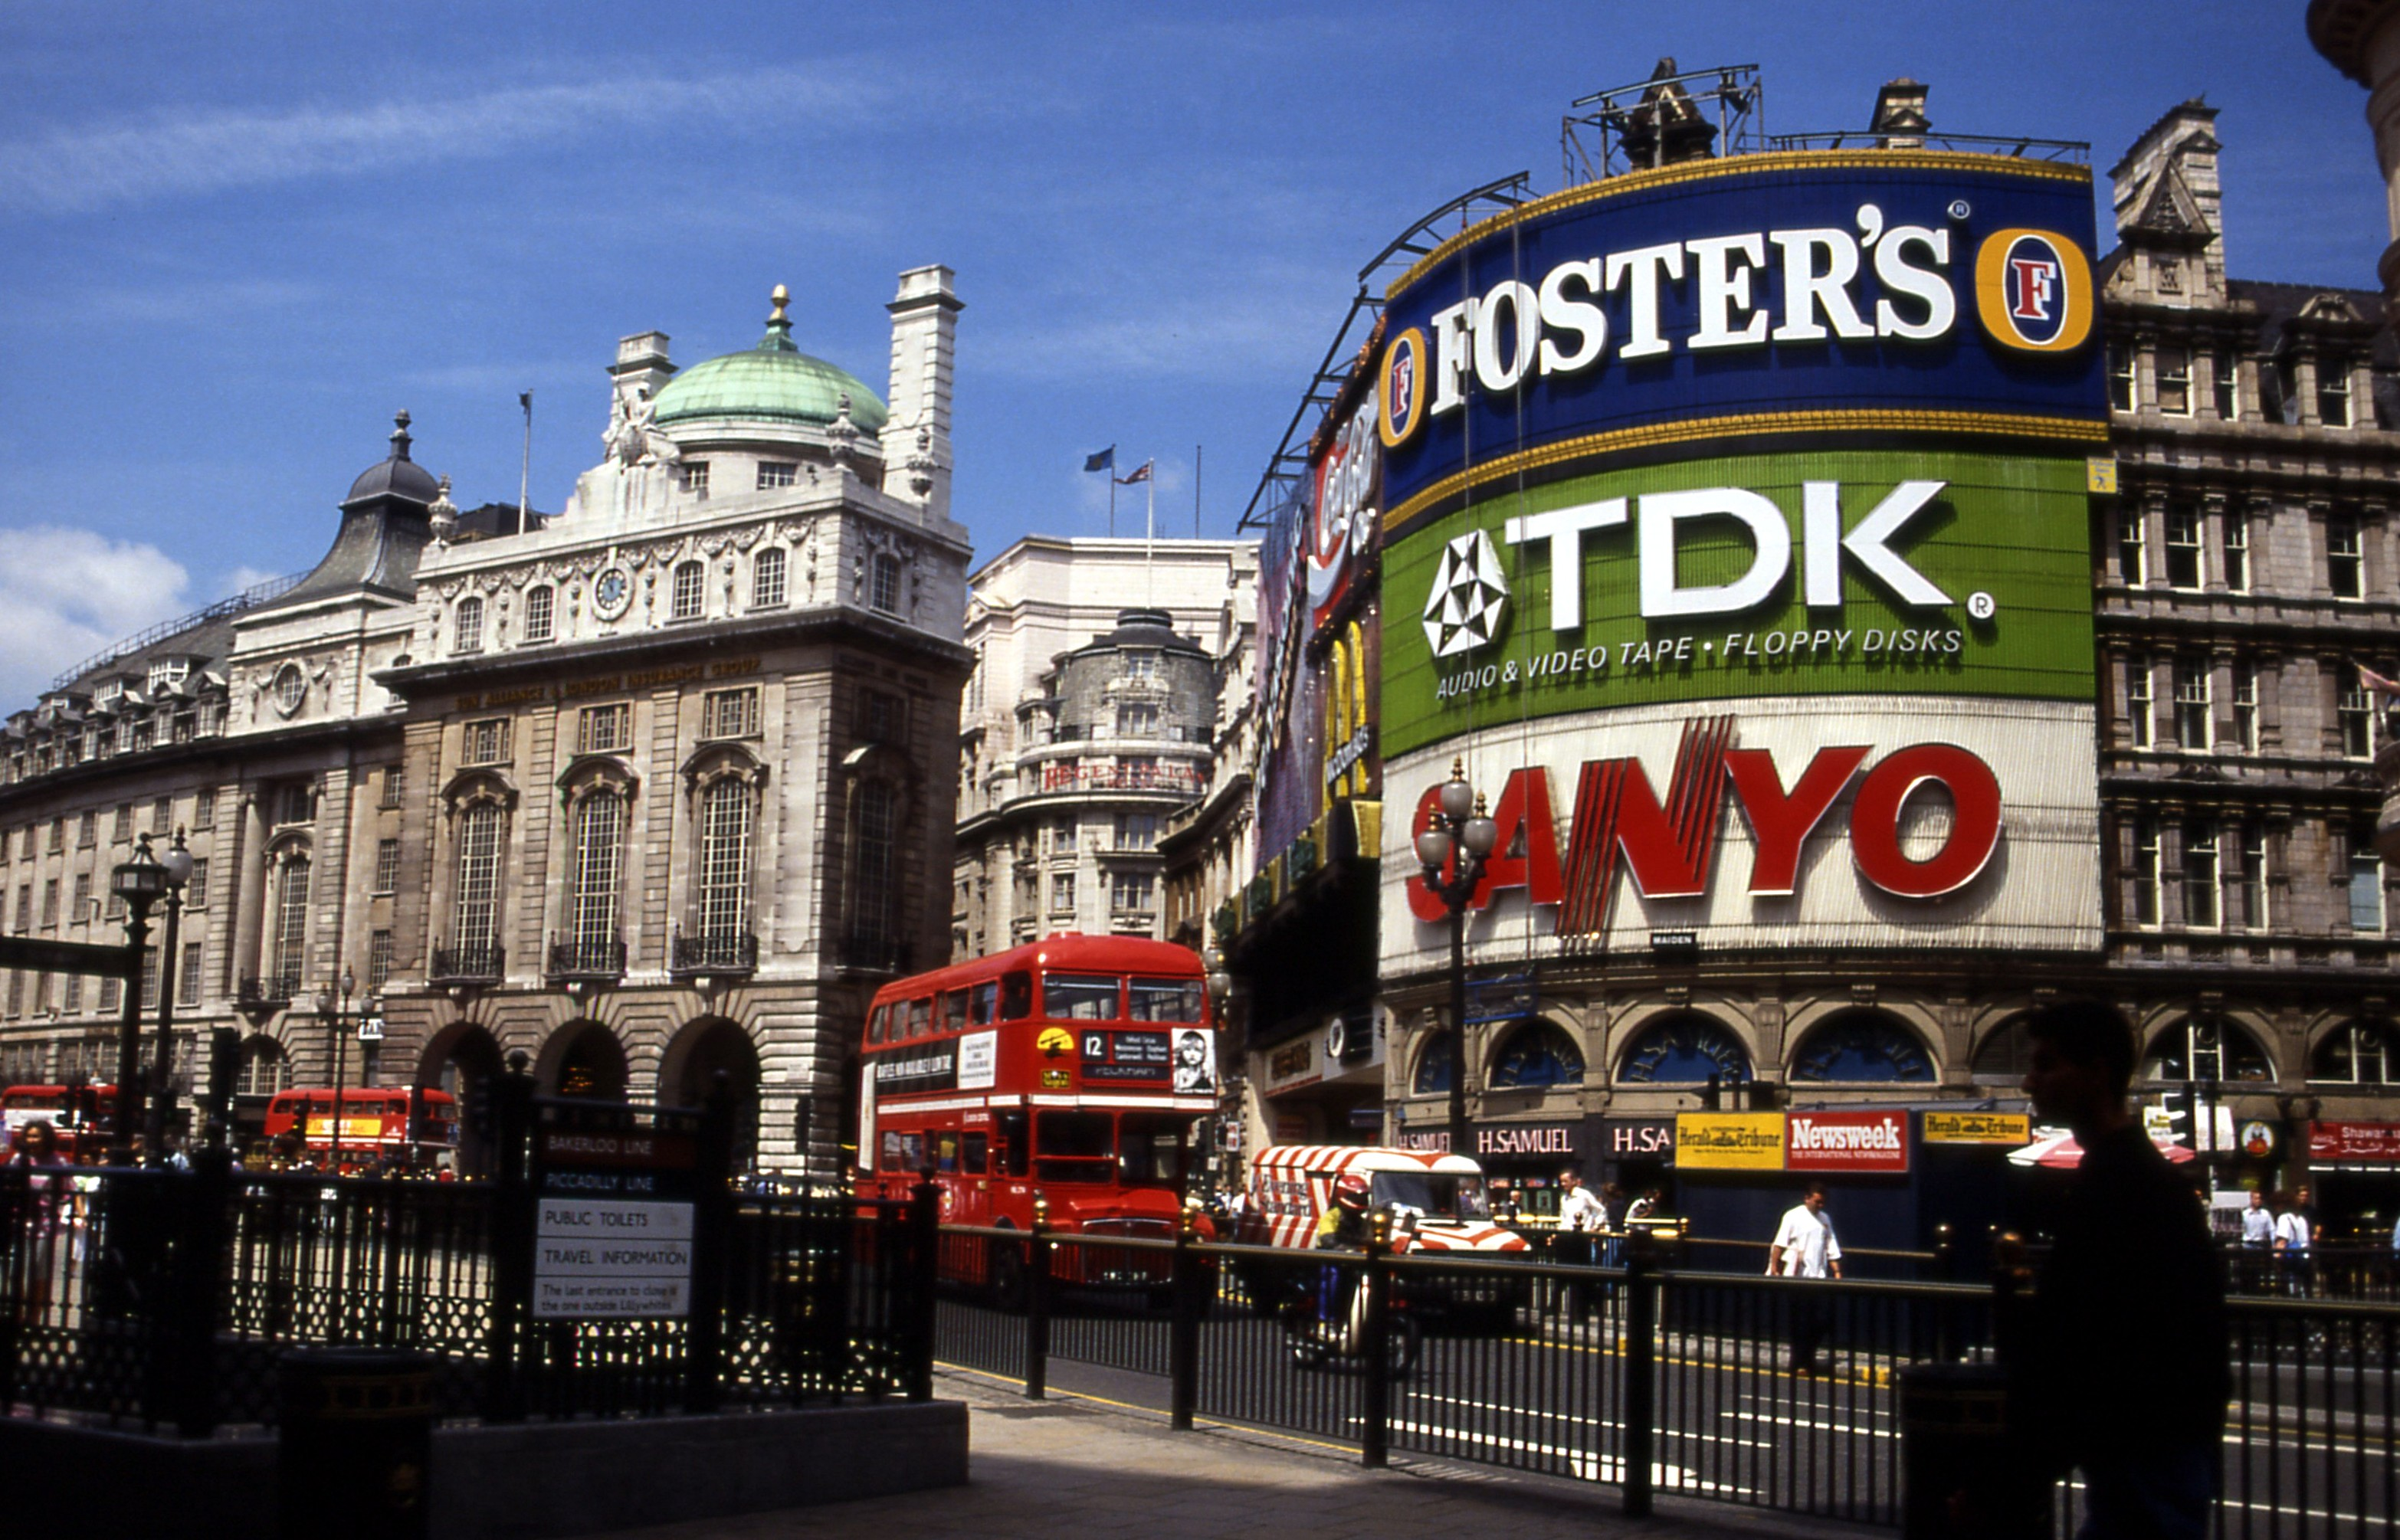 Casino Piccadilly Circus